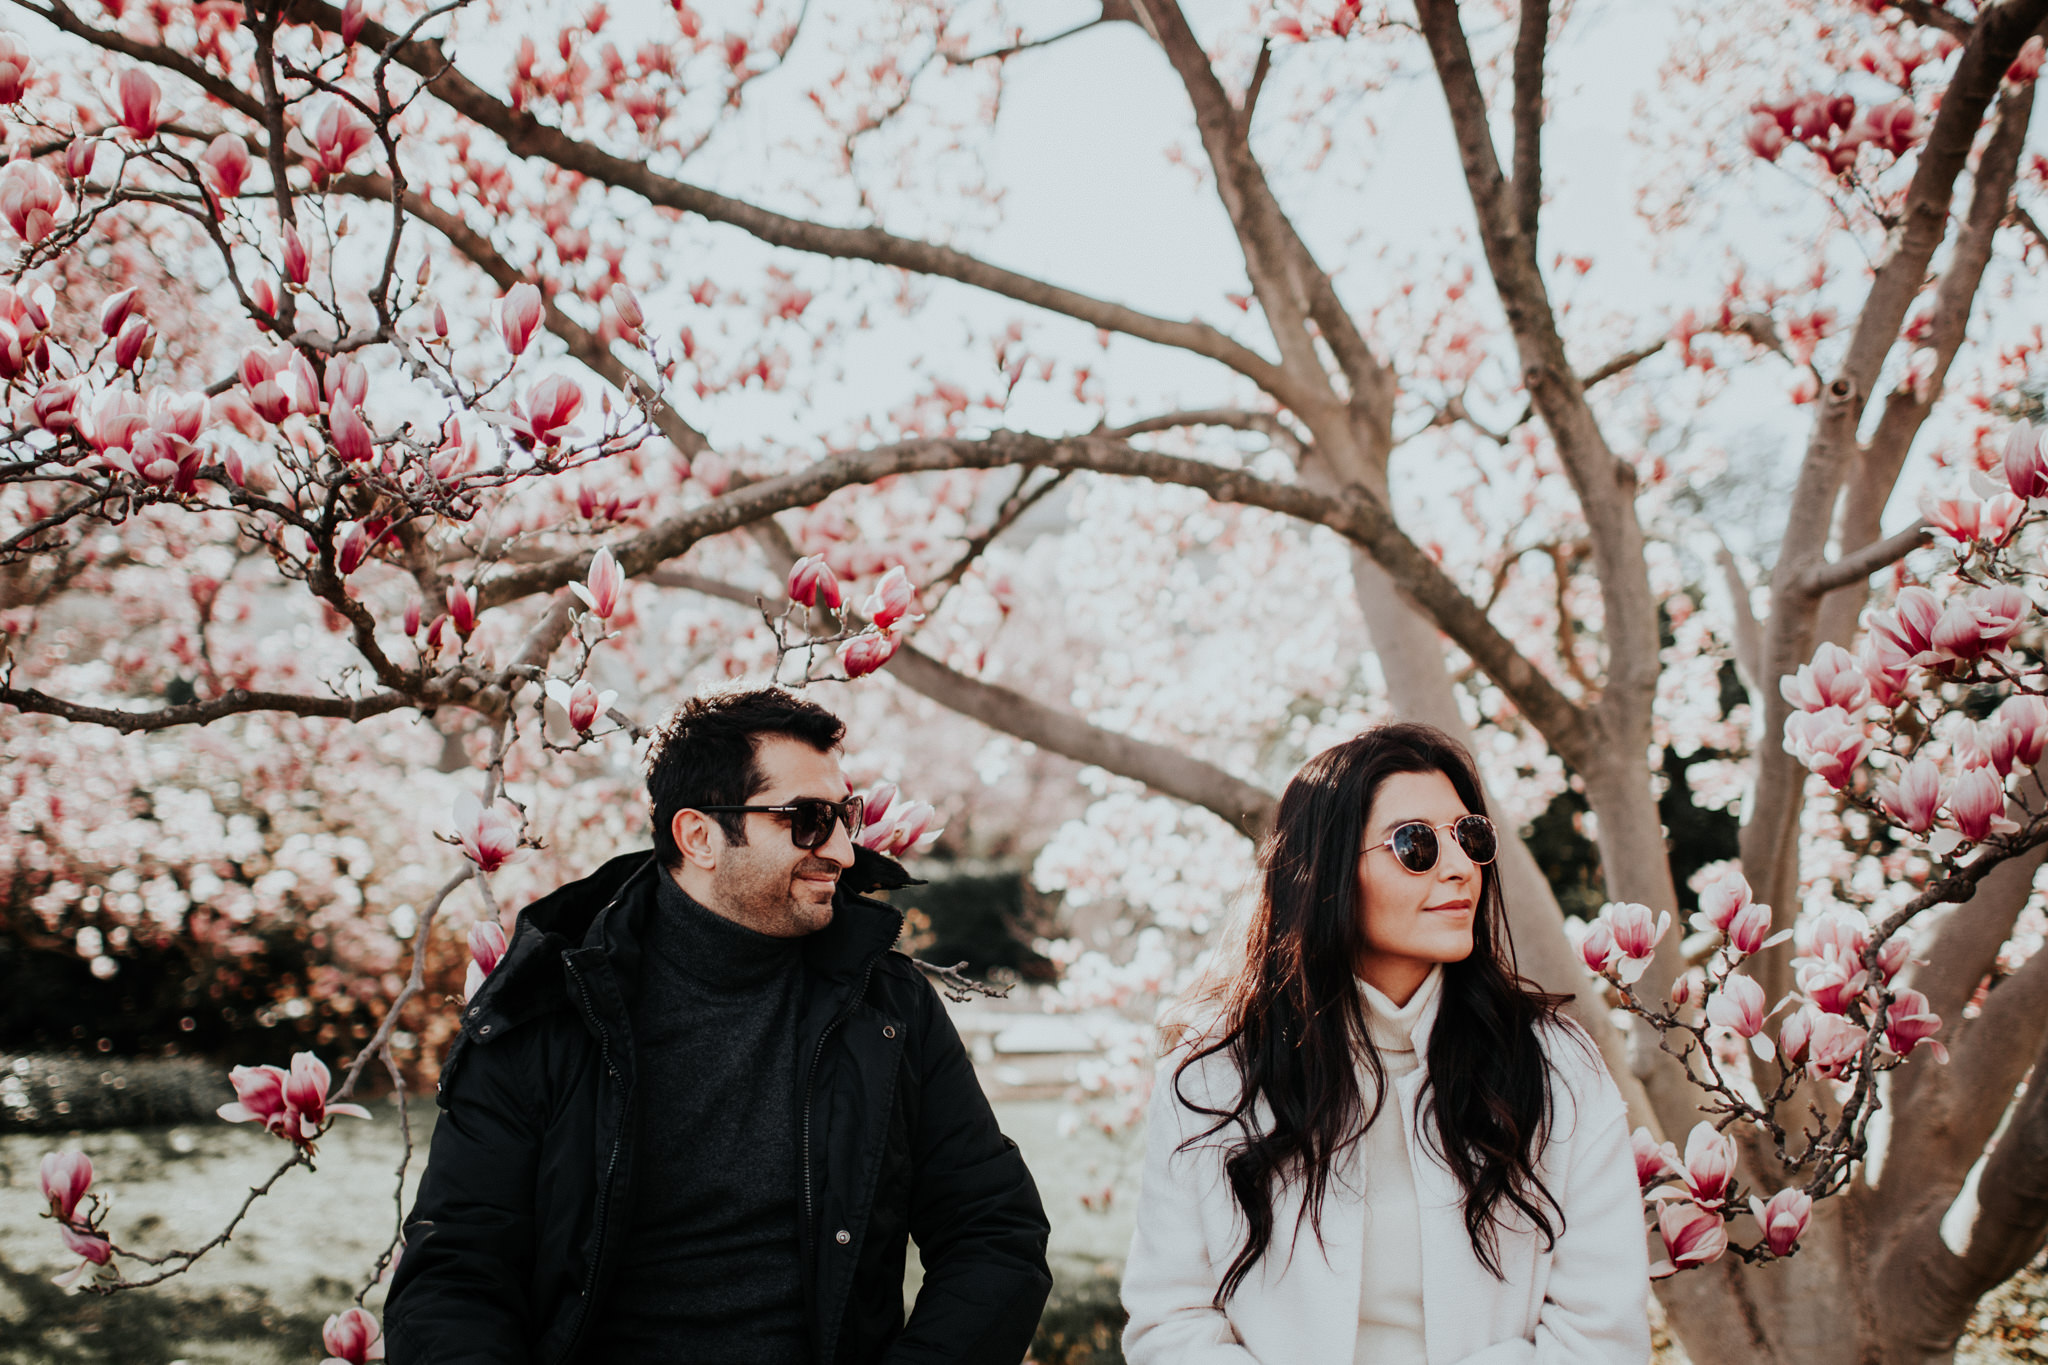 sunglasses couple cherry blossoms dc washington dc